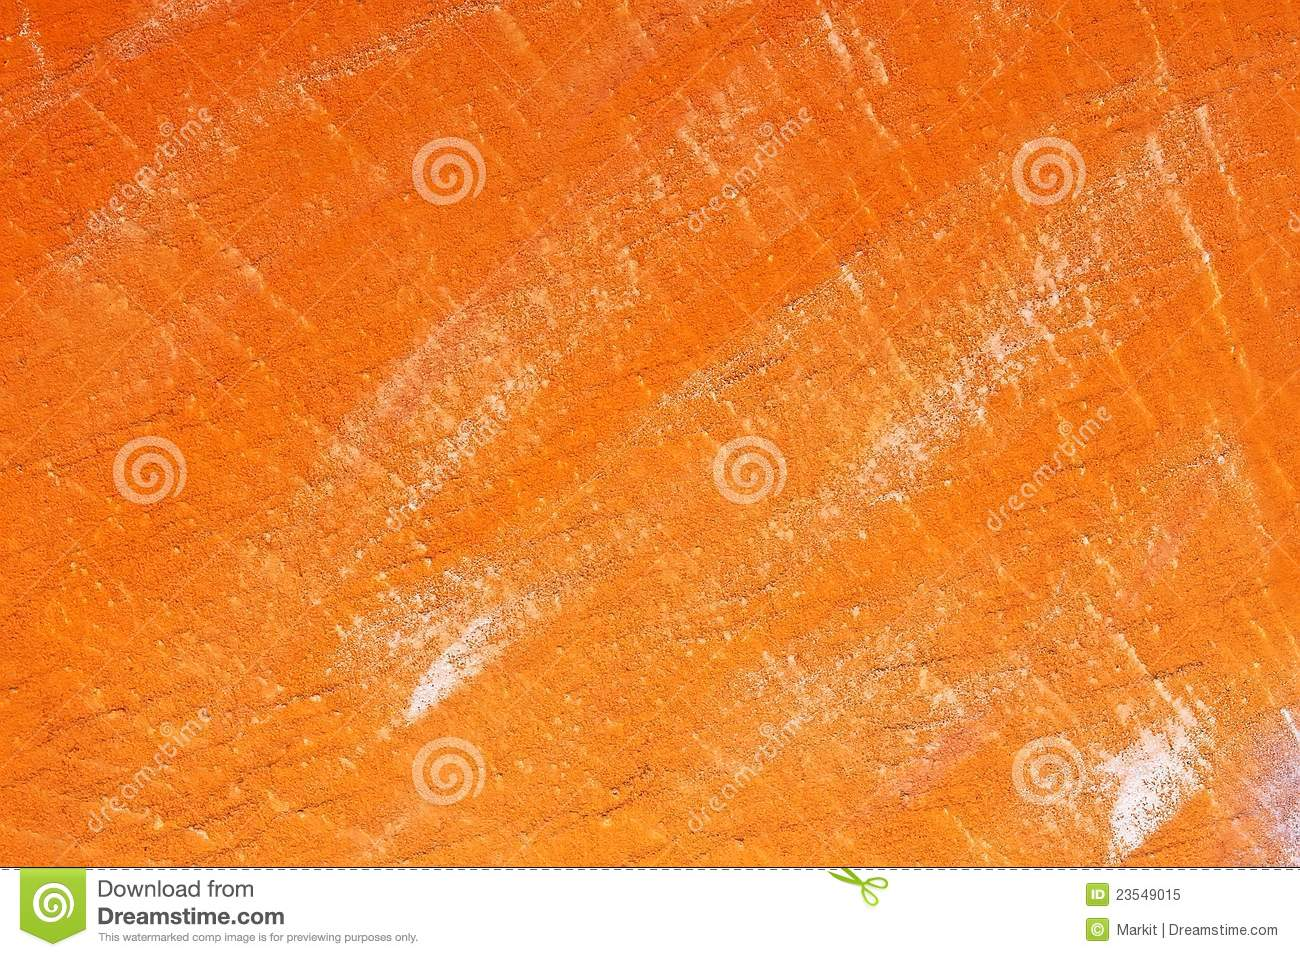 Orange Cement Wall : Concrete wall painted with orange royalty free stock photo